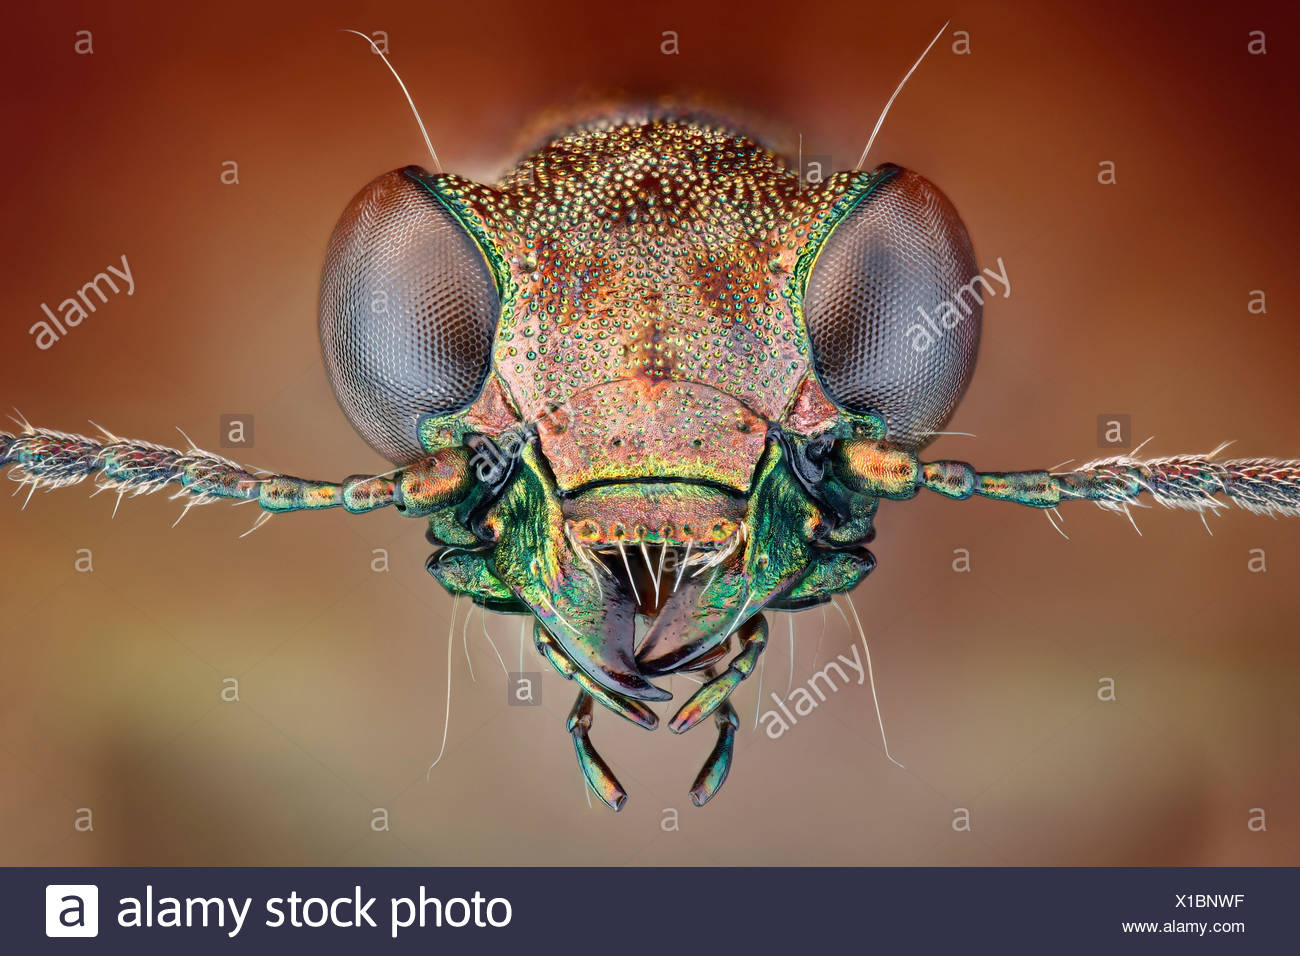 Head of a ground beetle Elaphrus, extreme close-up - Stock Image